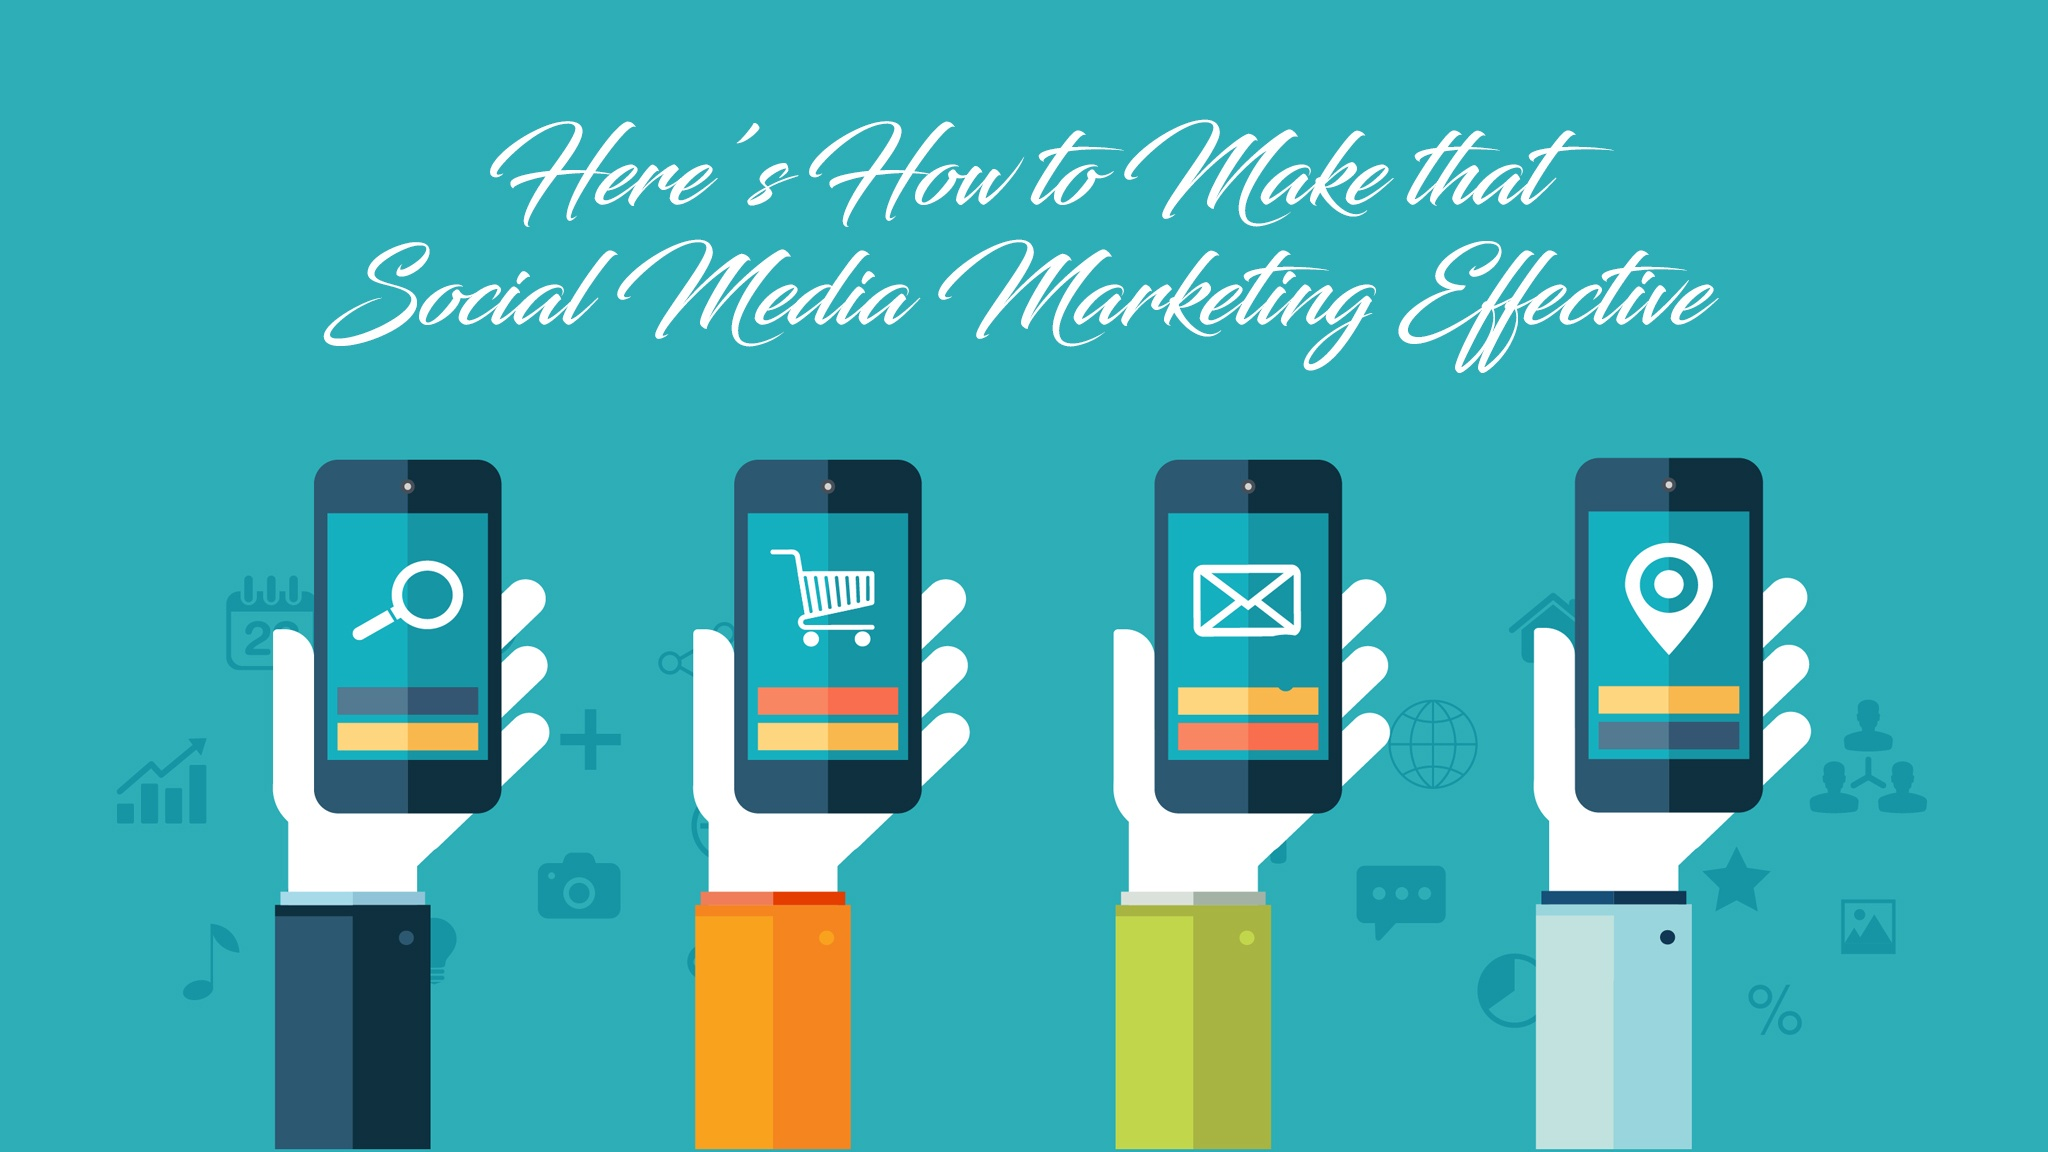 Here's How to Make that Social Media Marketing Effective